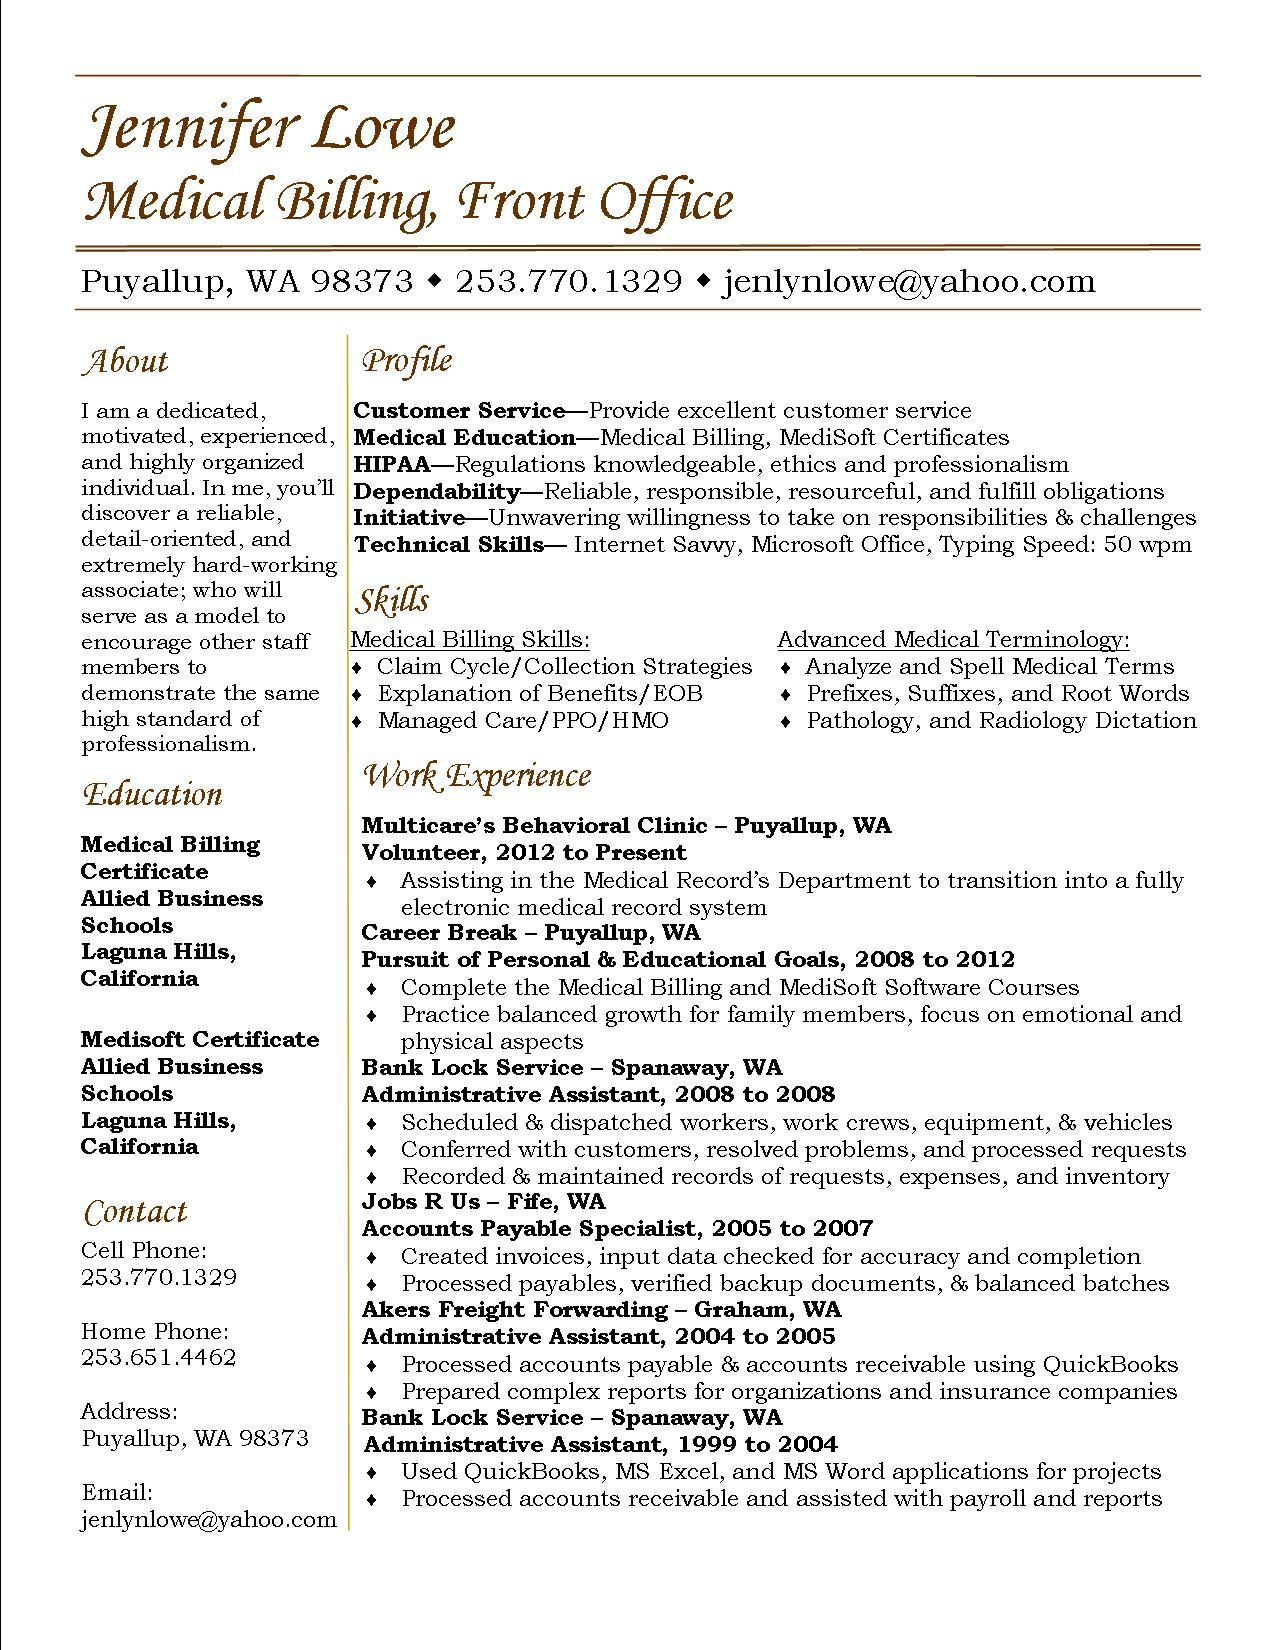 Great Jennifer Lowe Resume Medical Billing #resume #career